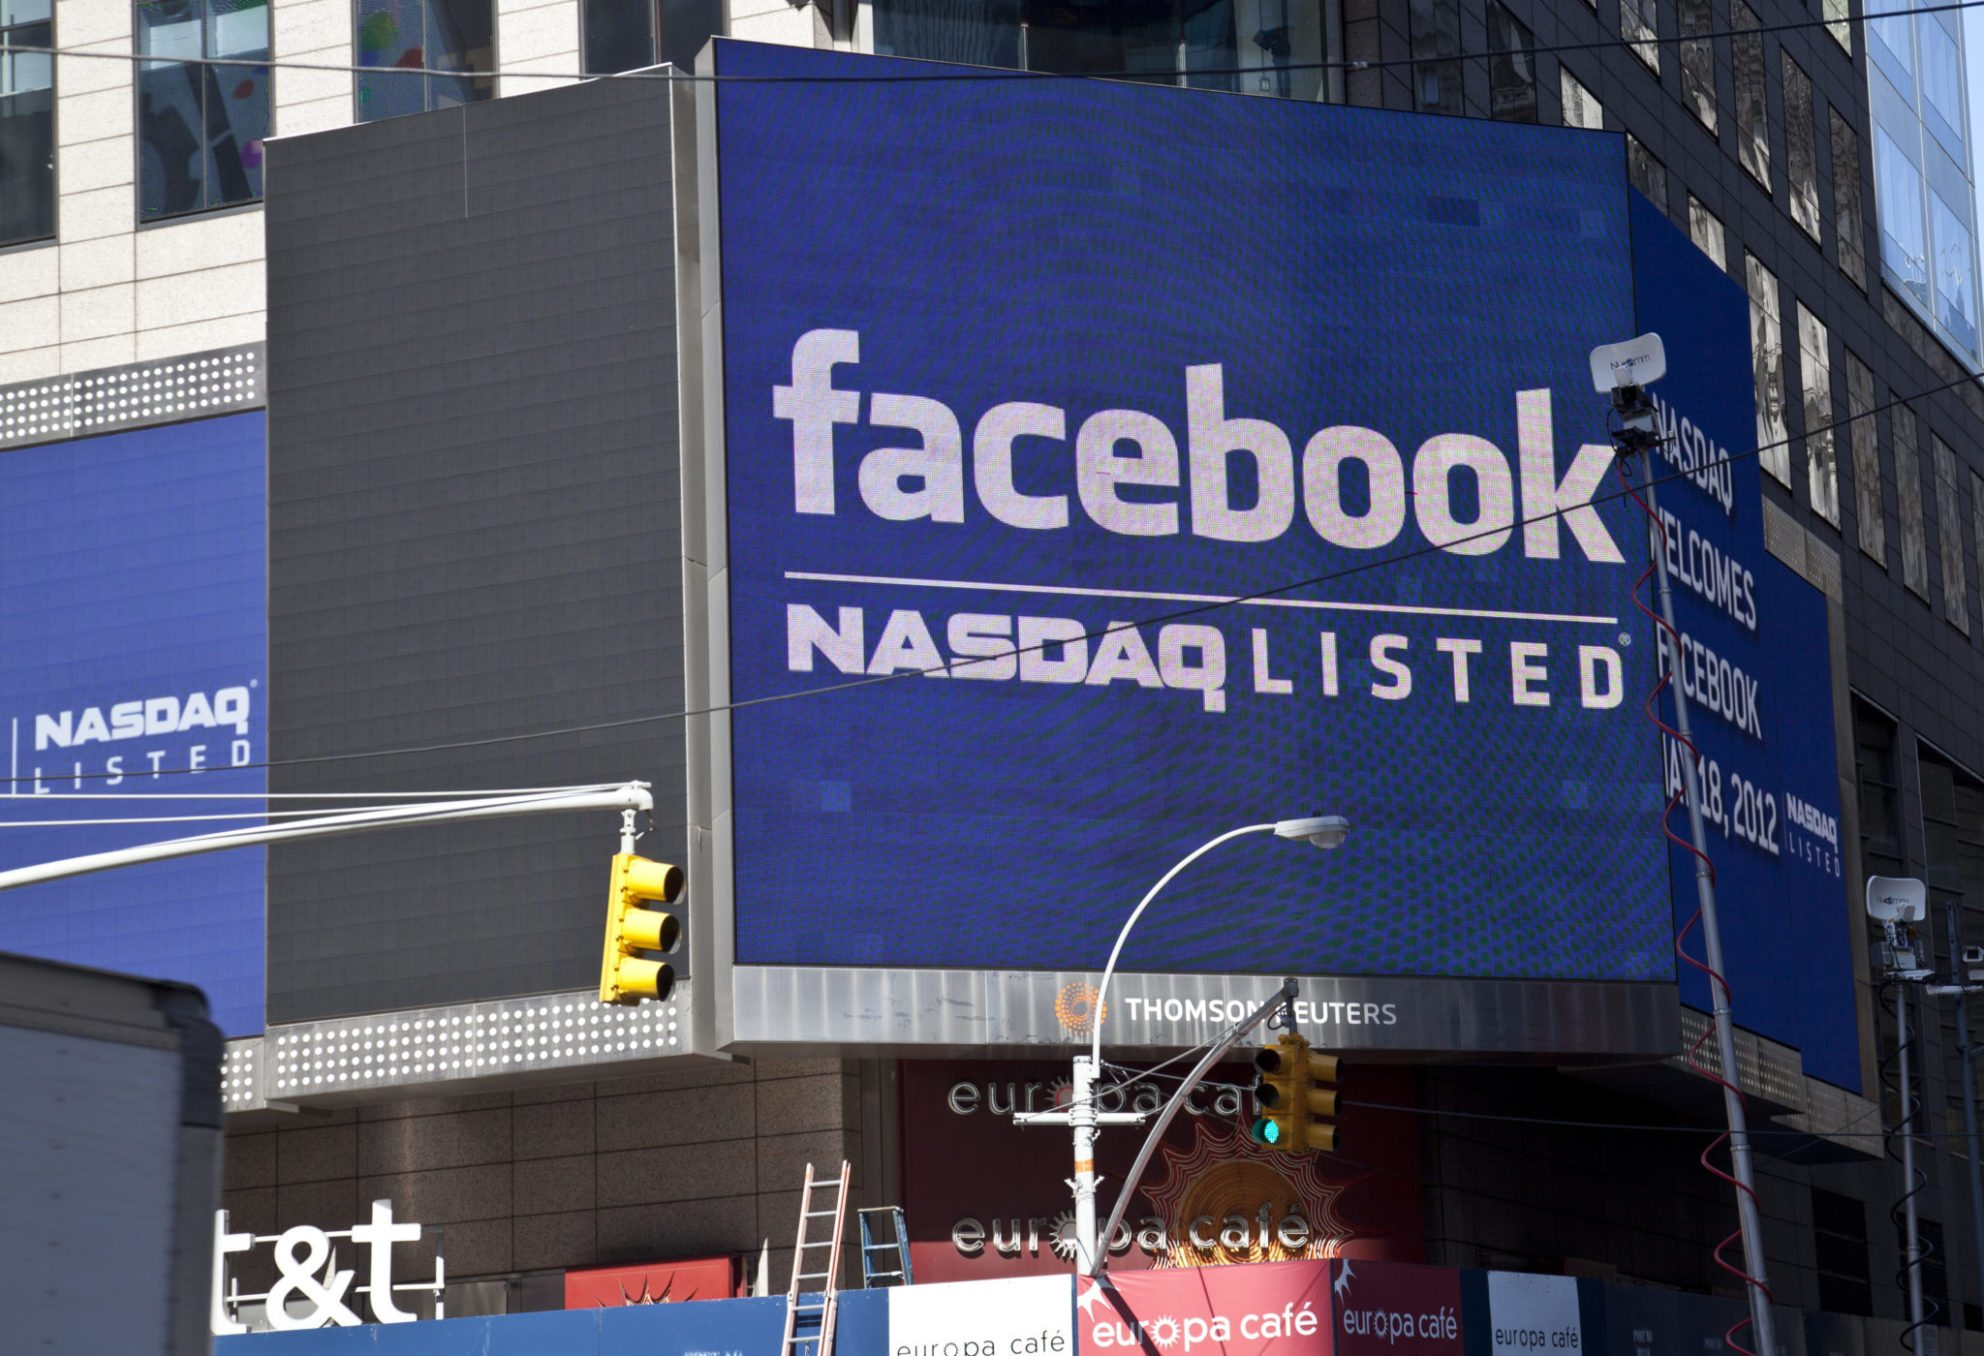 Facebook tweaks are great news for publishers, not so much for real estate brands